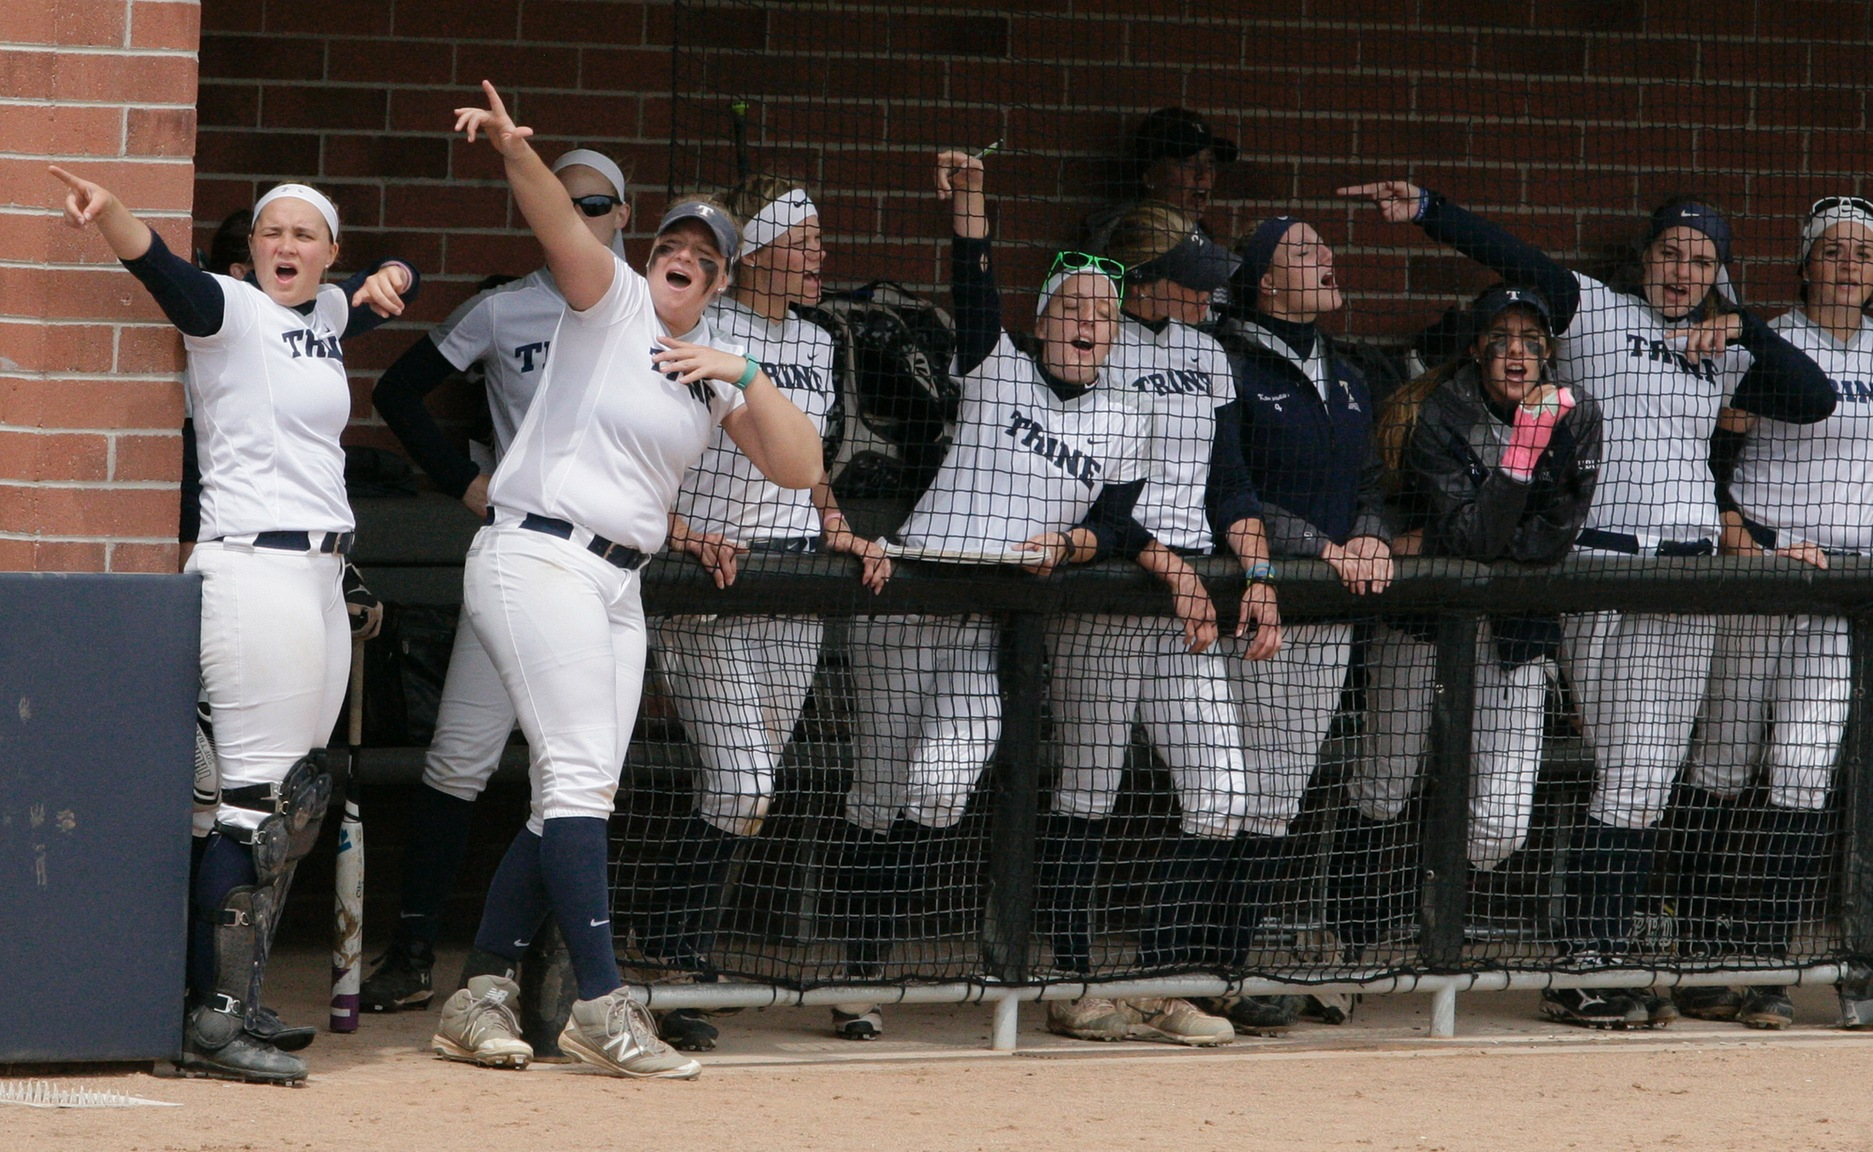 Softball Enters Regional Ranked No. 22 in Nation